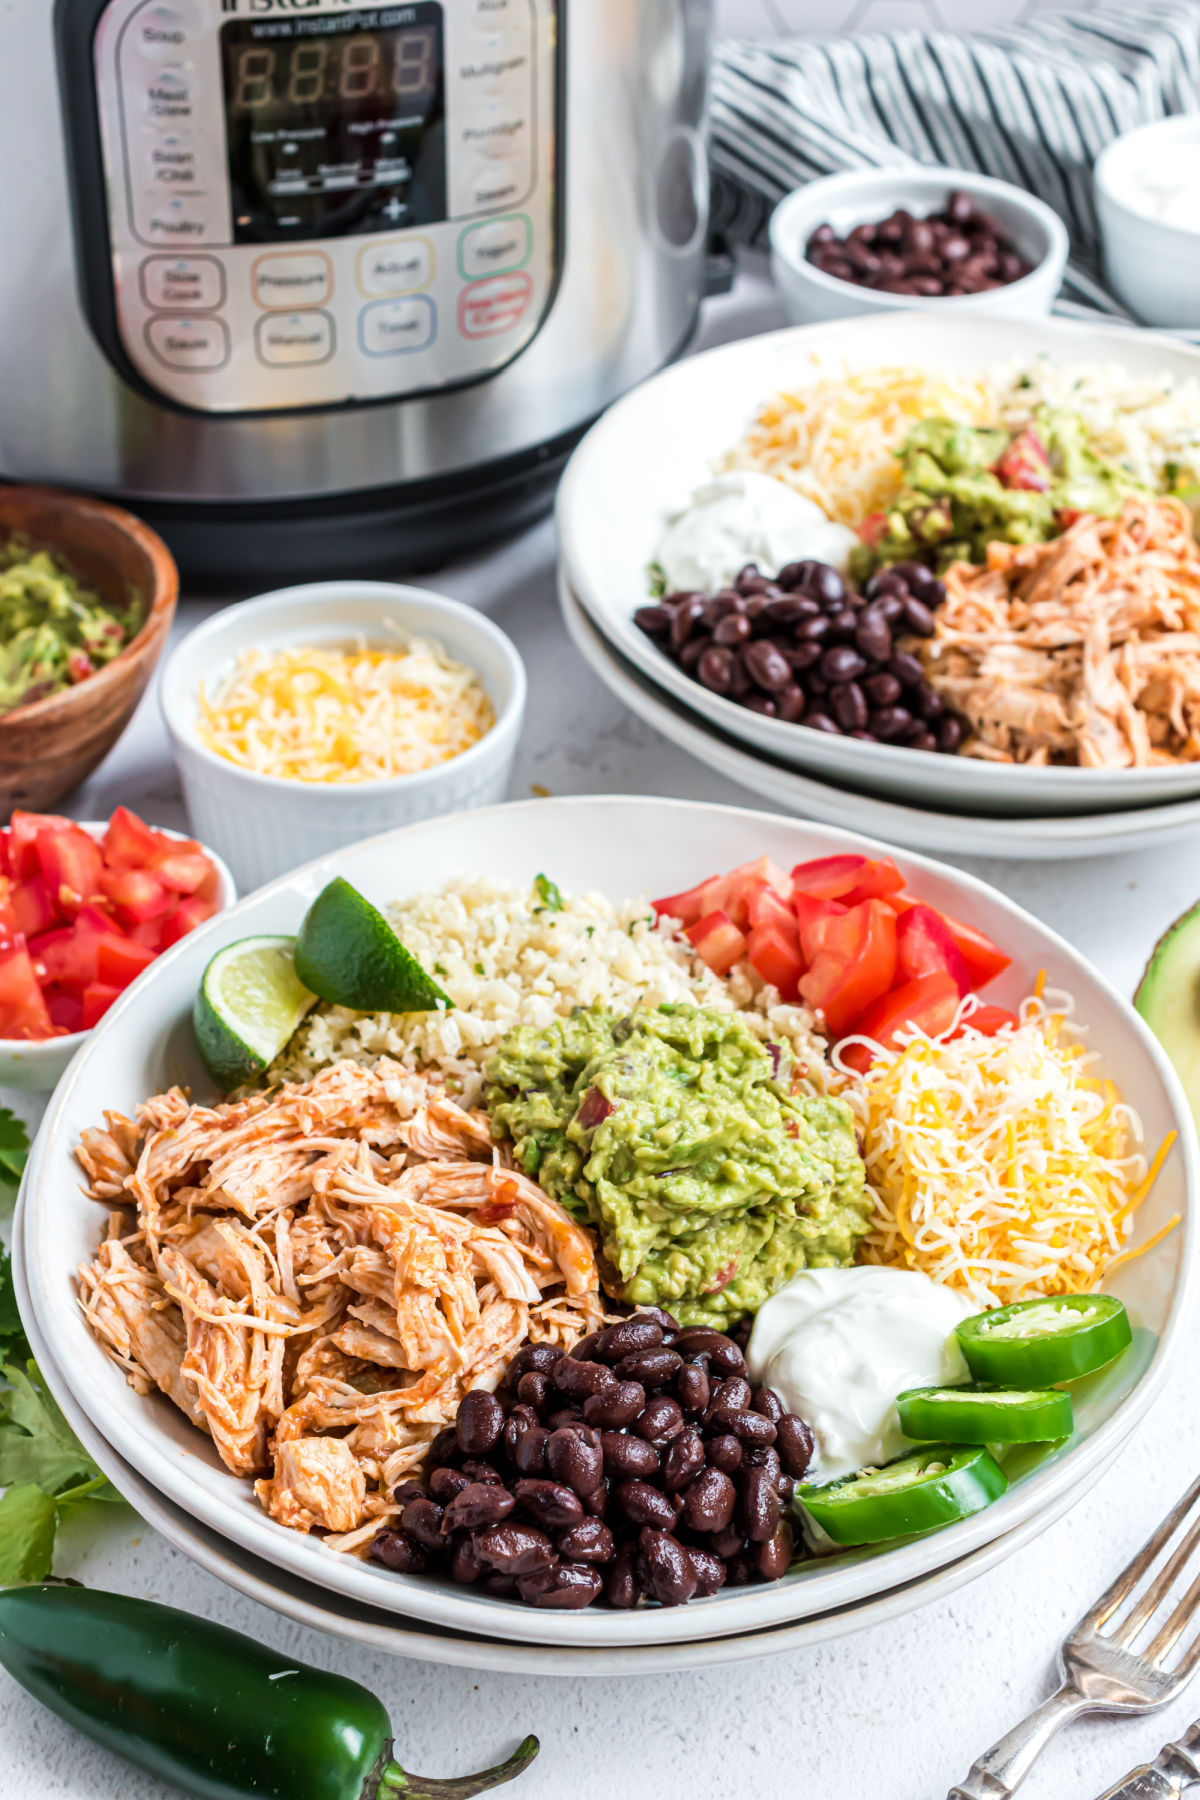 Chicken taco bowl with cheese, guacamole, black beans assembled in a white bowl with Instant Pot in background.